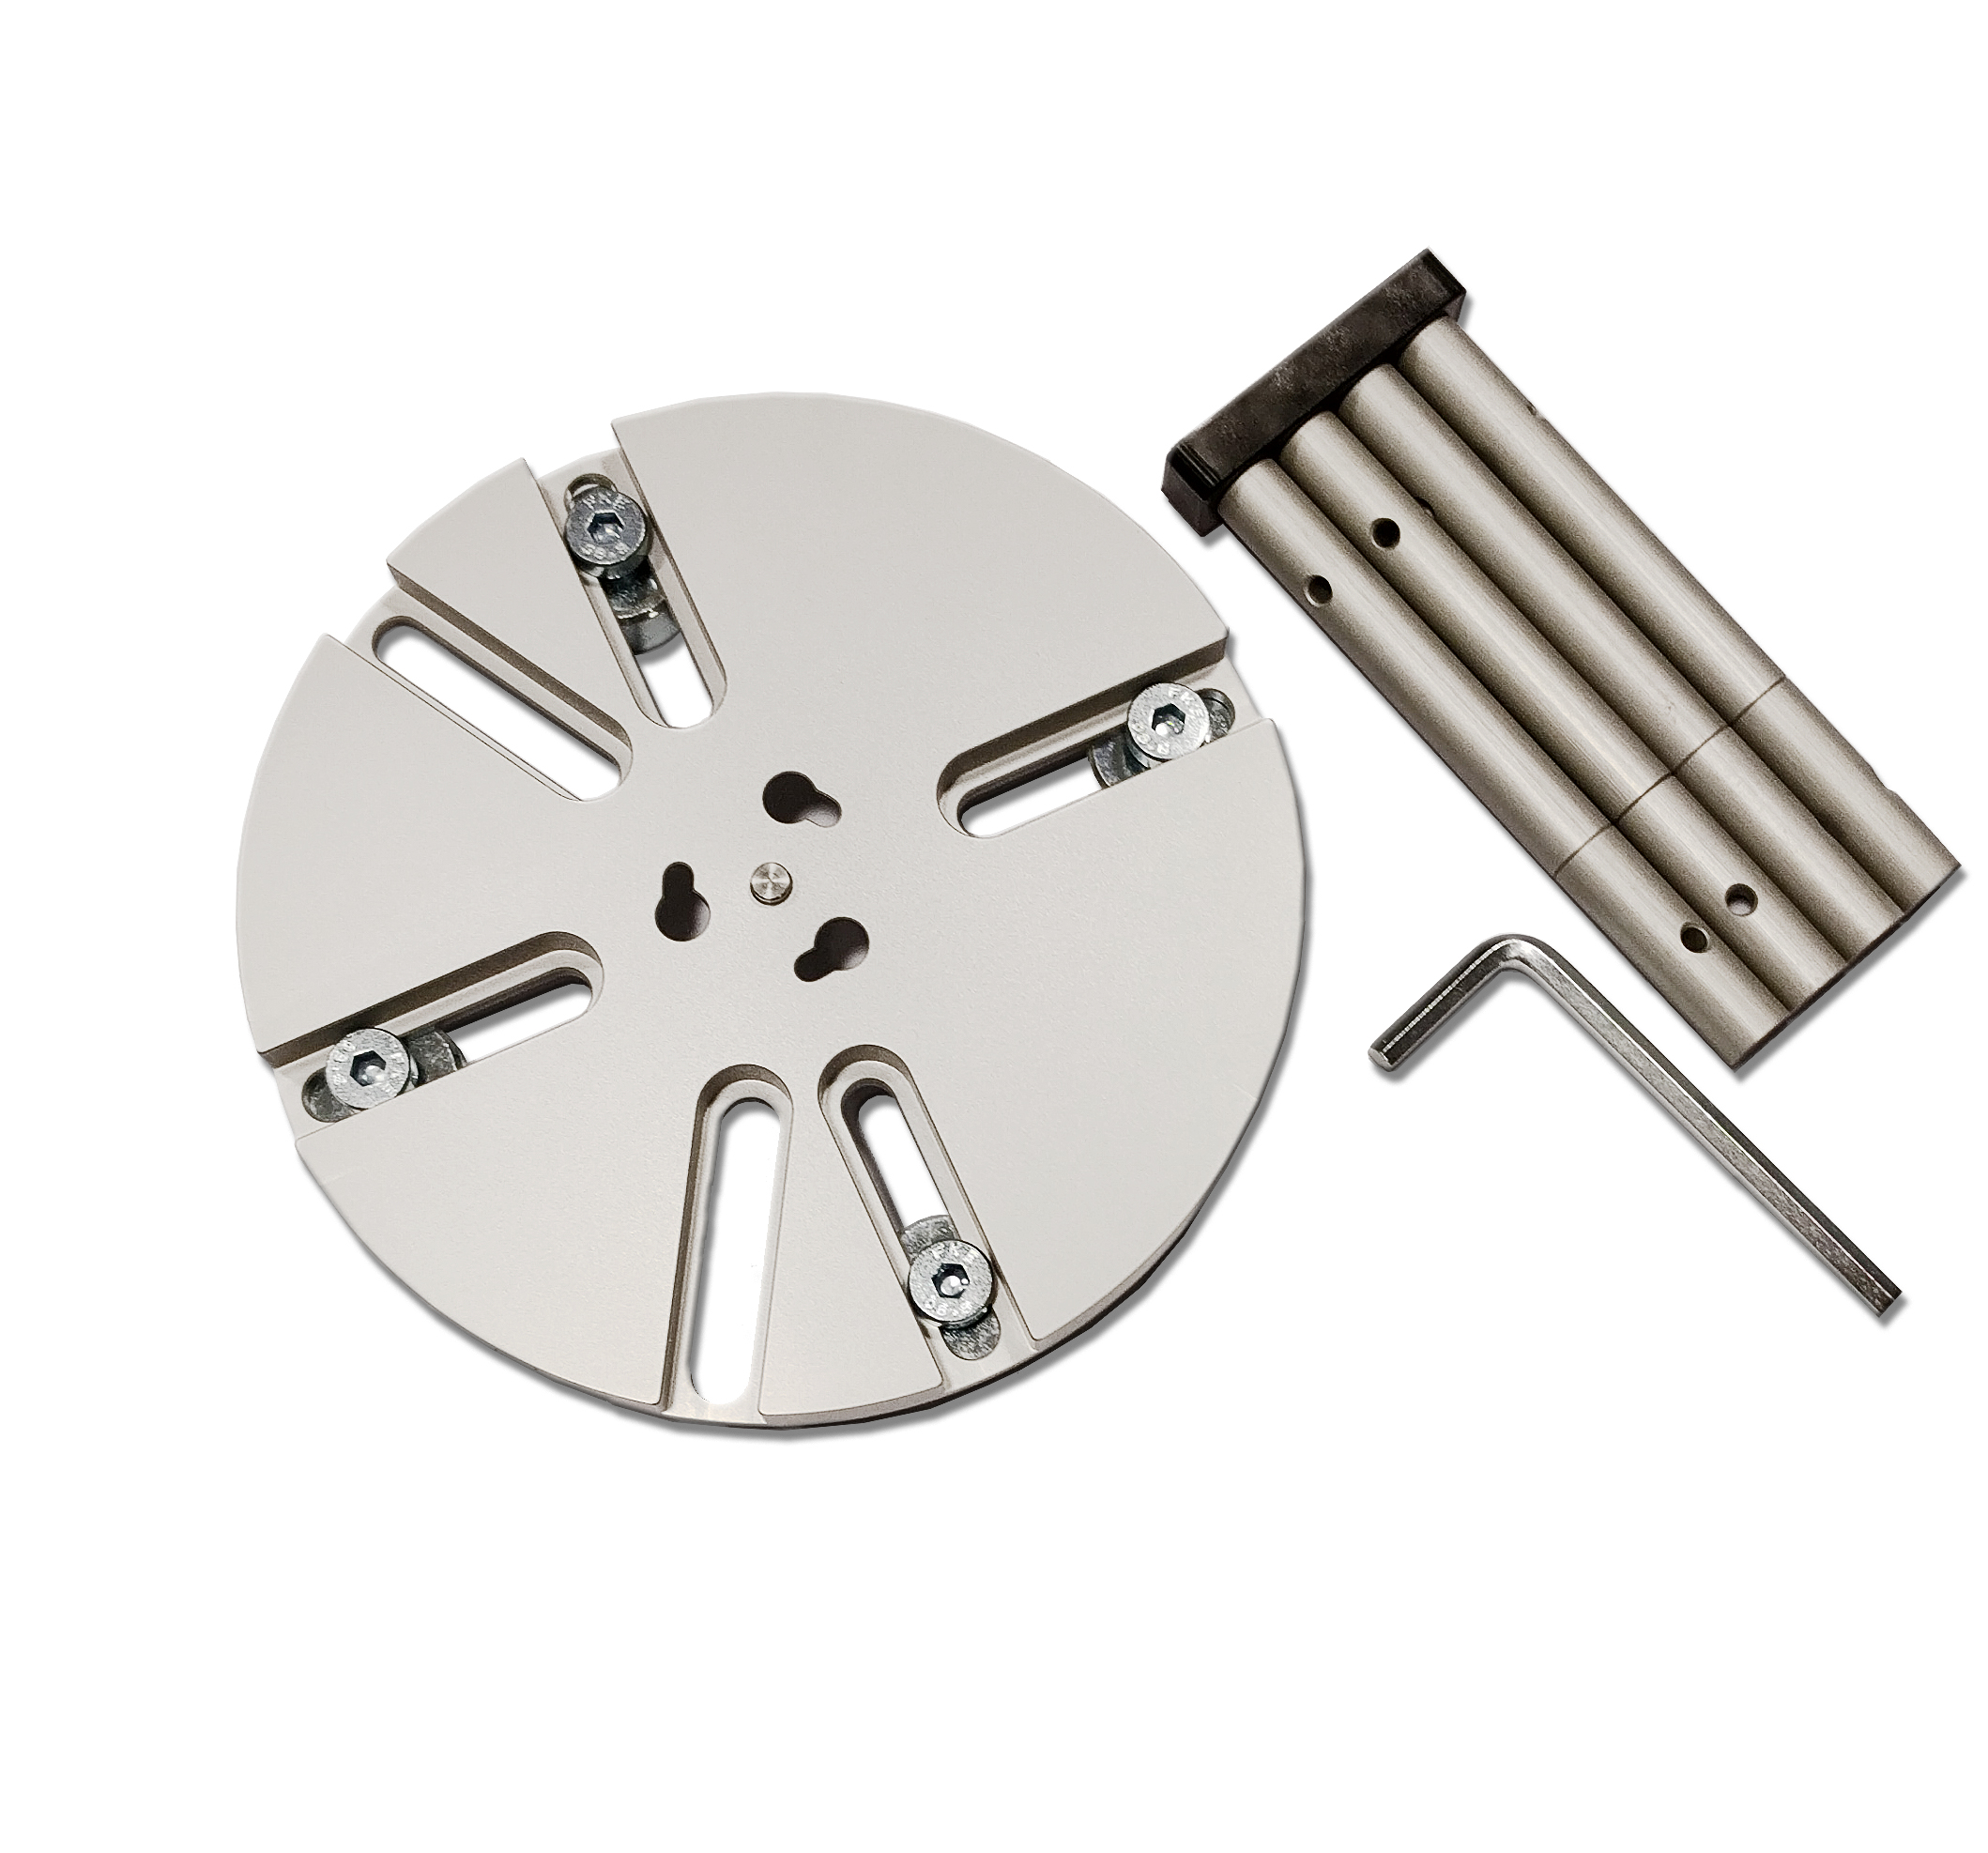 MEAX CIRCULAR MOUNTING PLATE